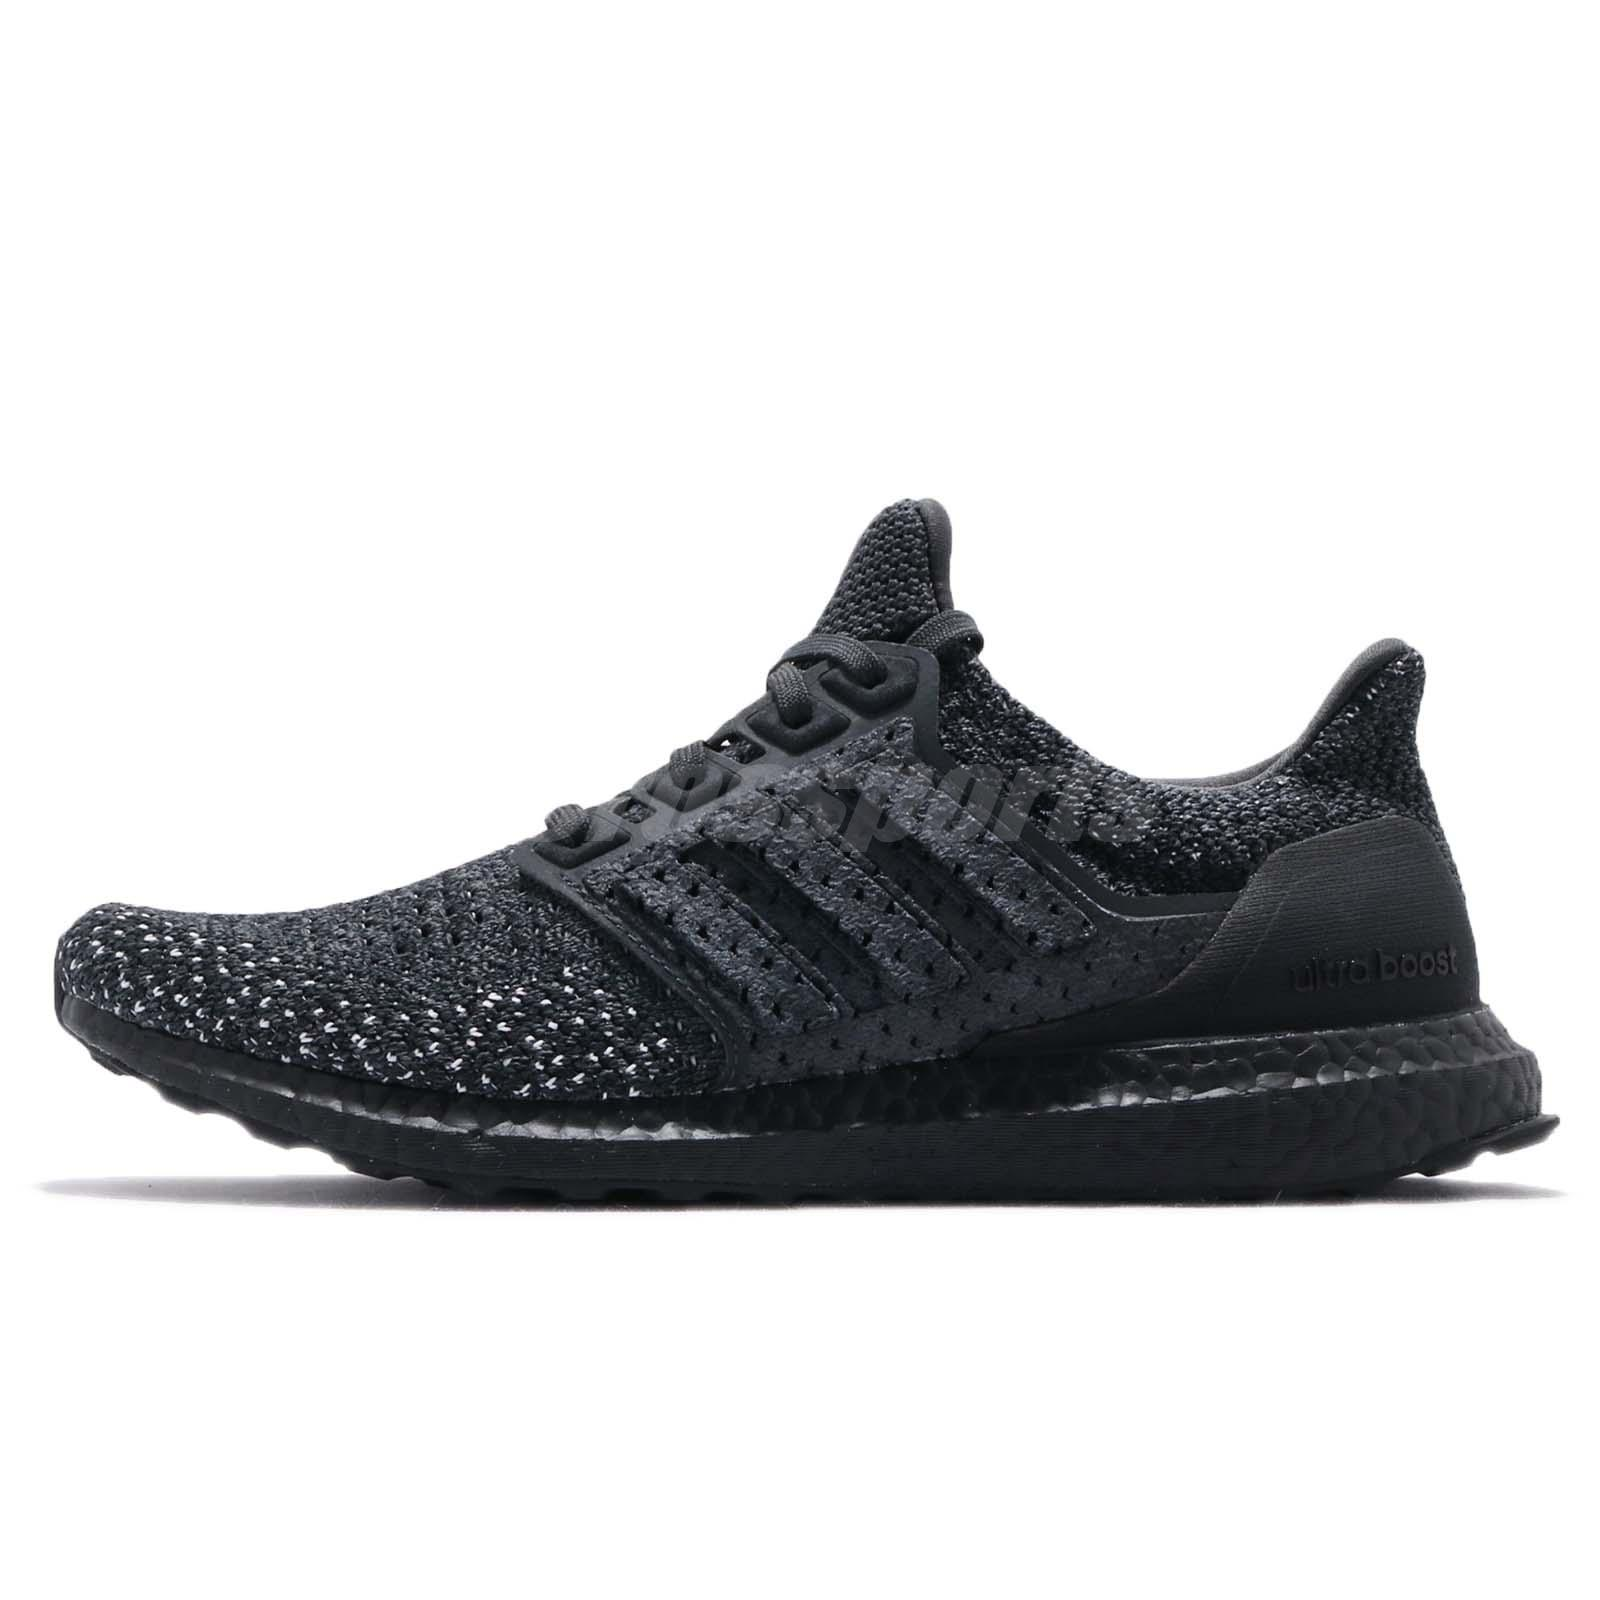 Details about adidas Ultra BOOST Clima LTD 4.0 Carbon Black Men Running Shoes Sneakers CQ0022